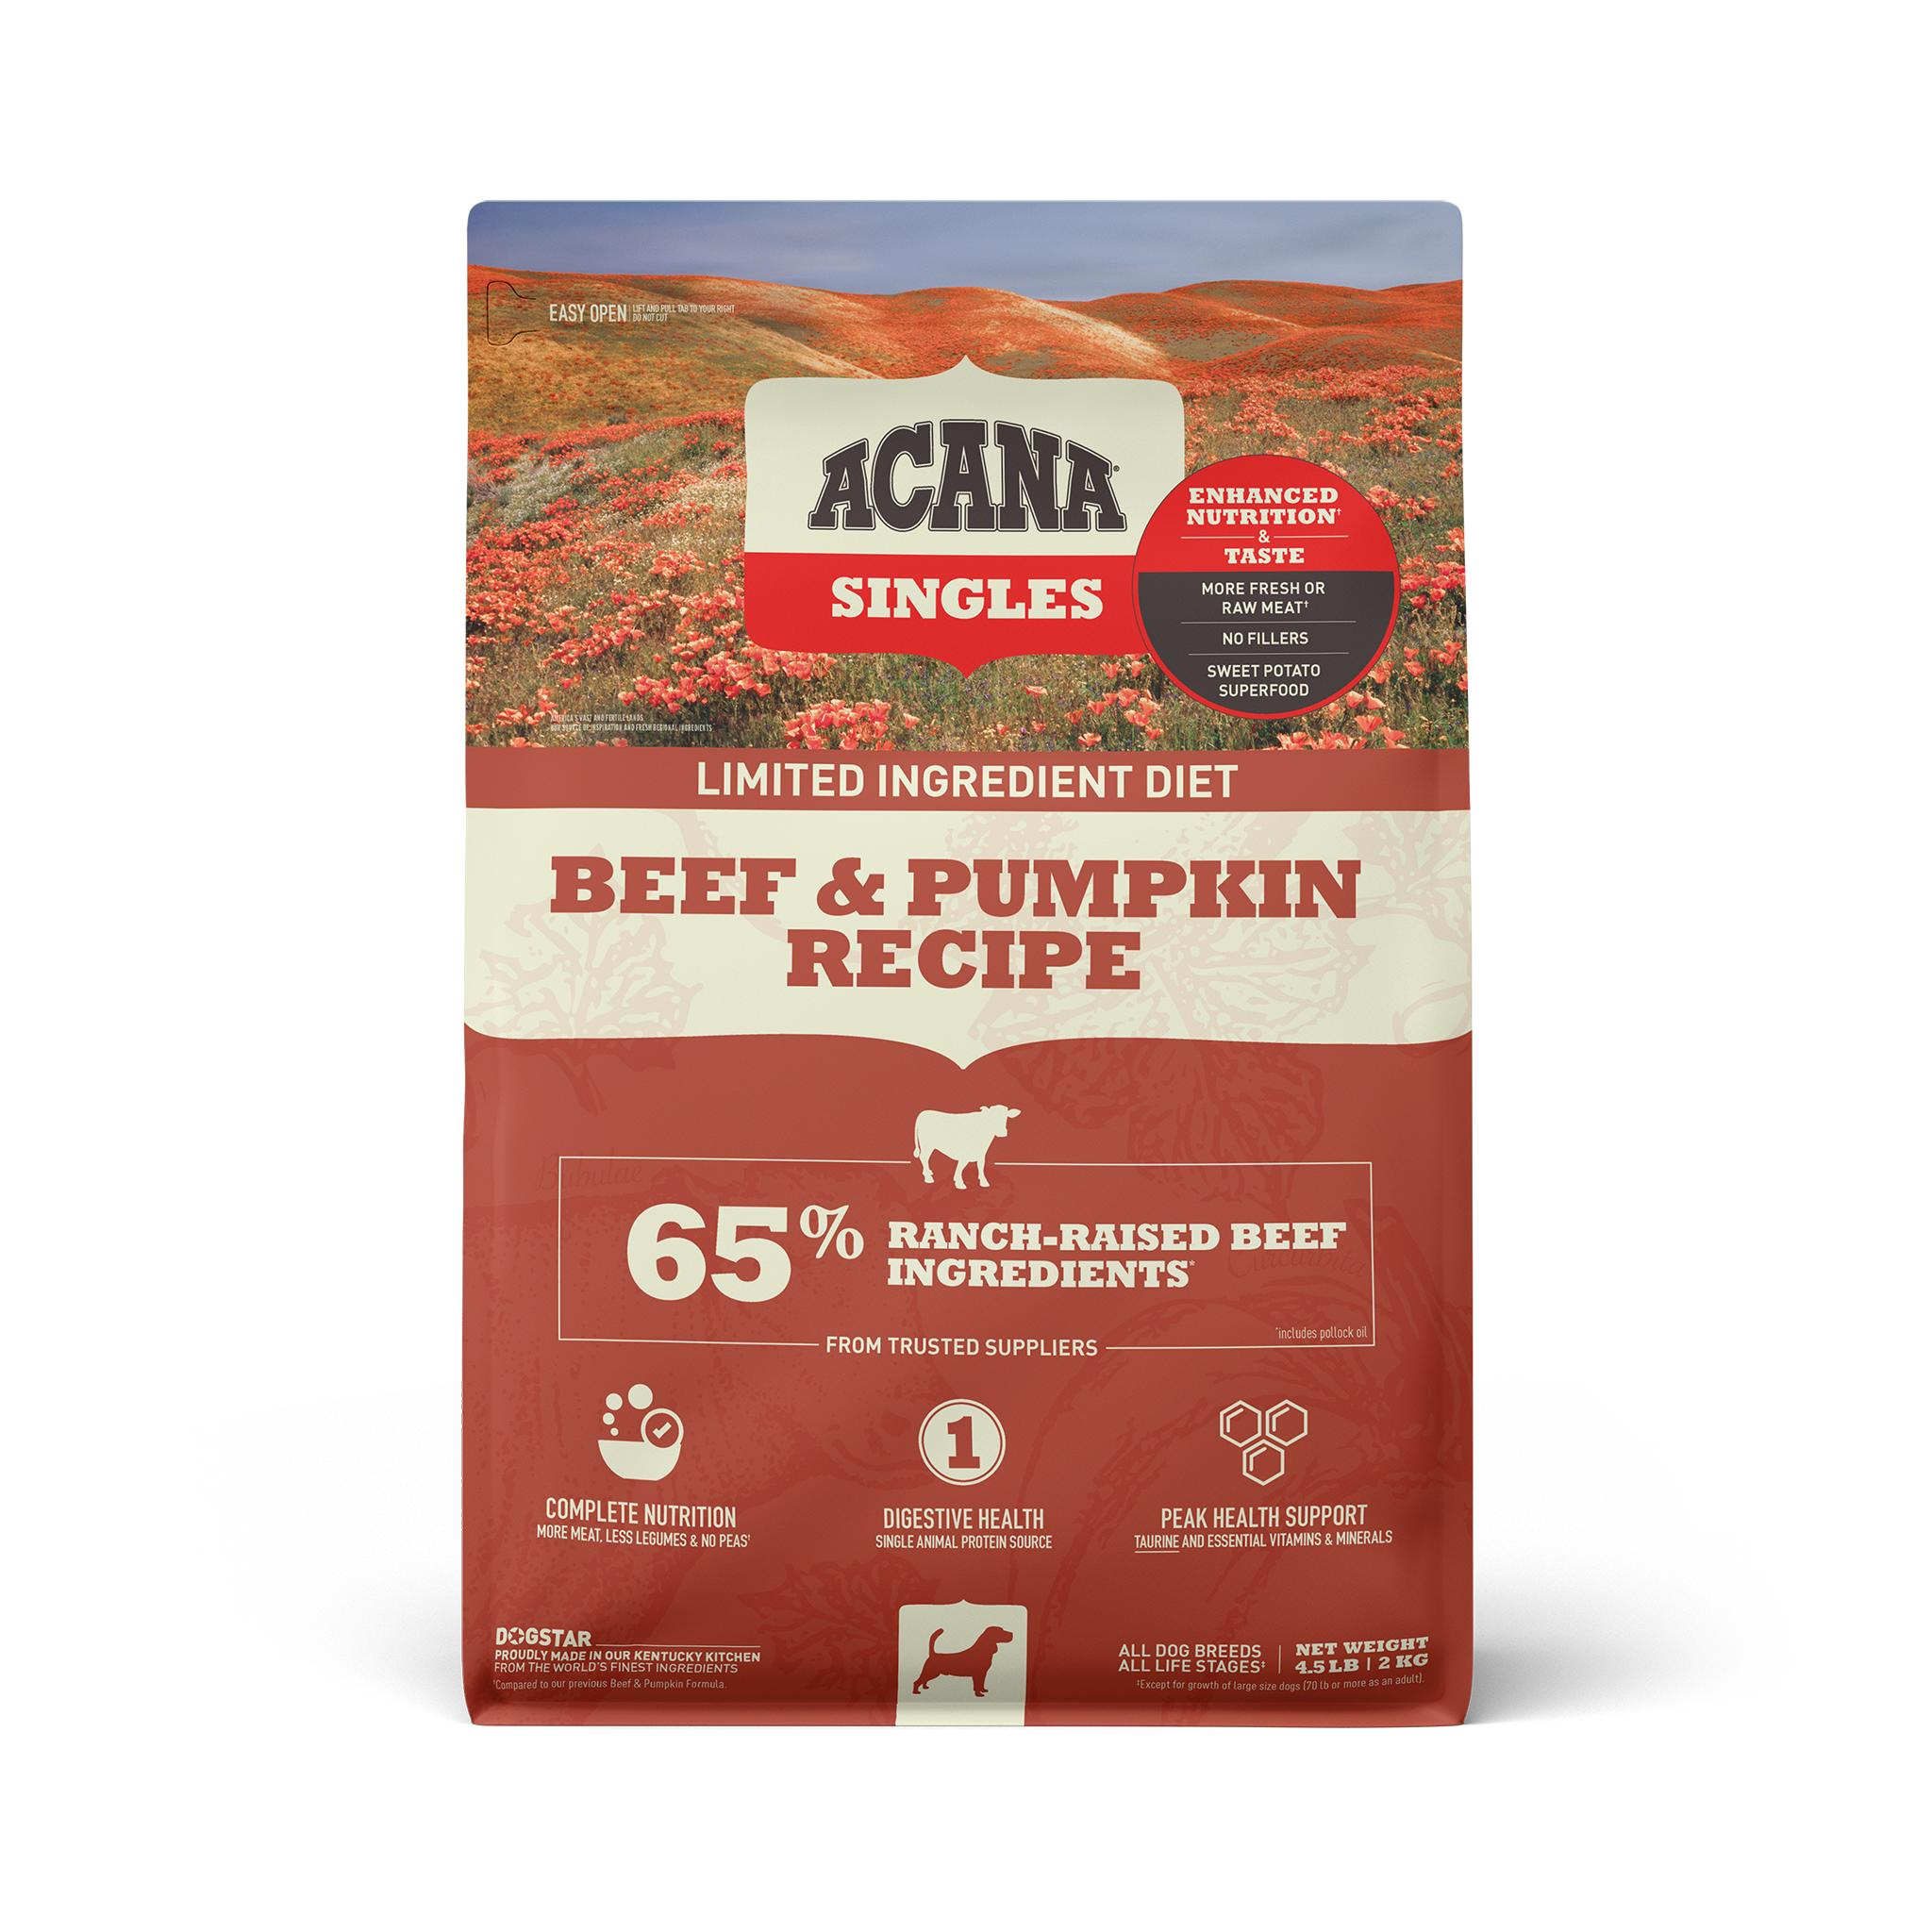 ACANA Singles Limited Ingredient Beef & Pumpkin Grain-Free Dry Dog Food, 4.5-lb